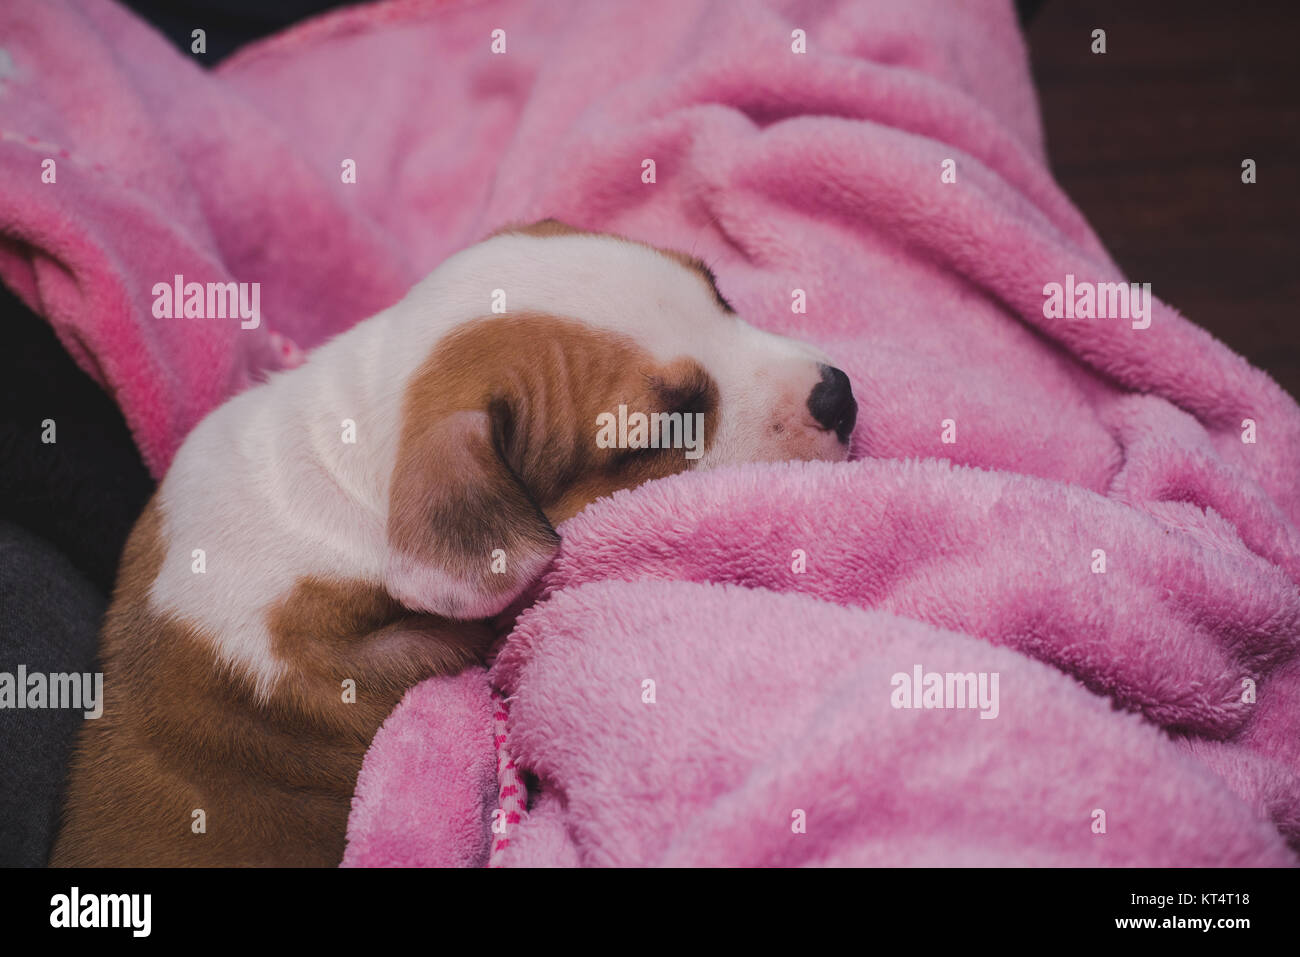 A pit bull mix puppy sleeps on a pink blanket. - Stock Image